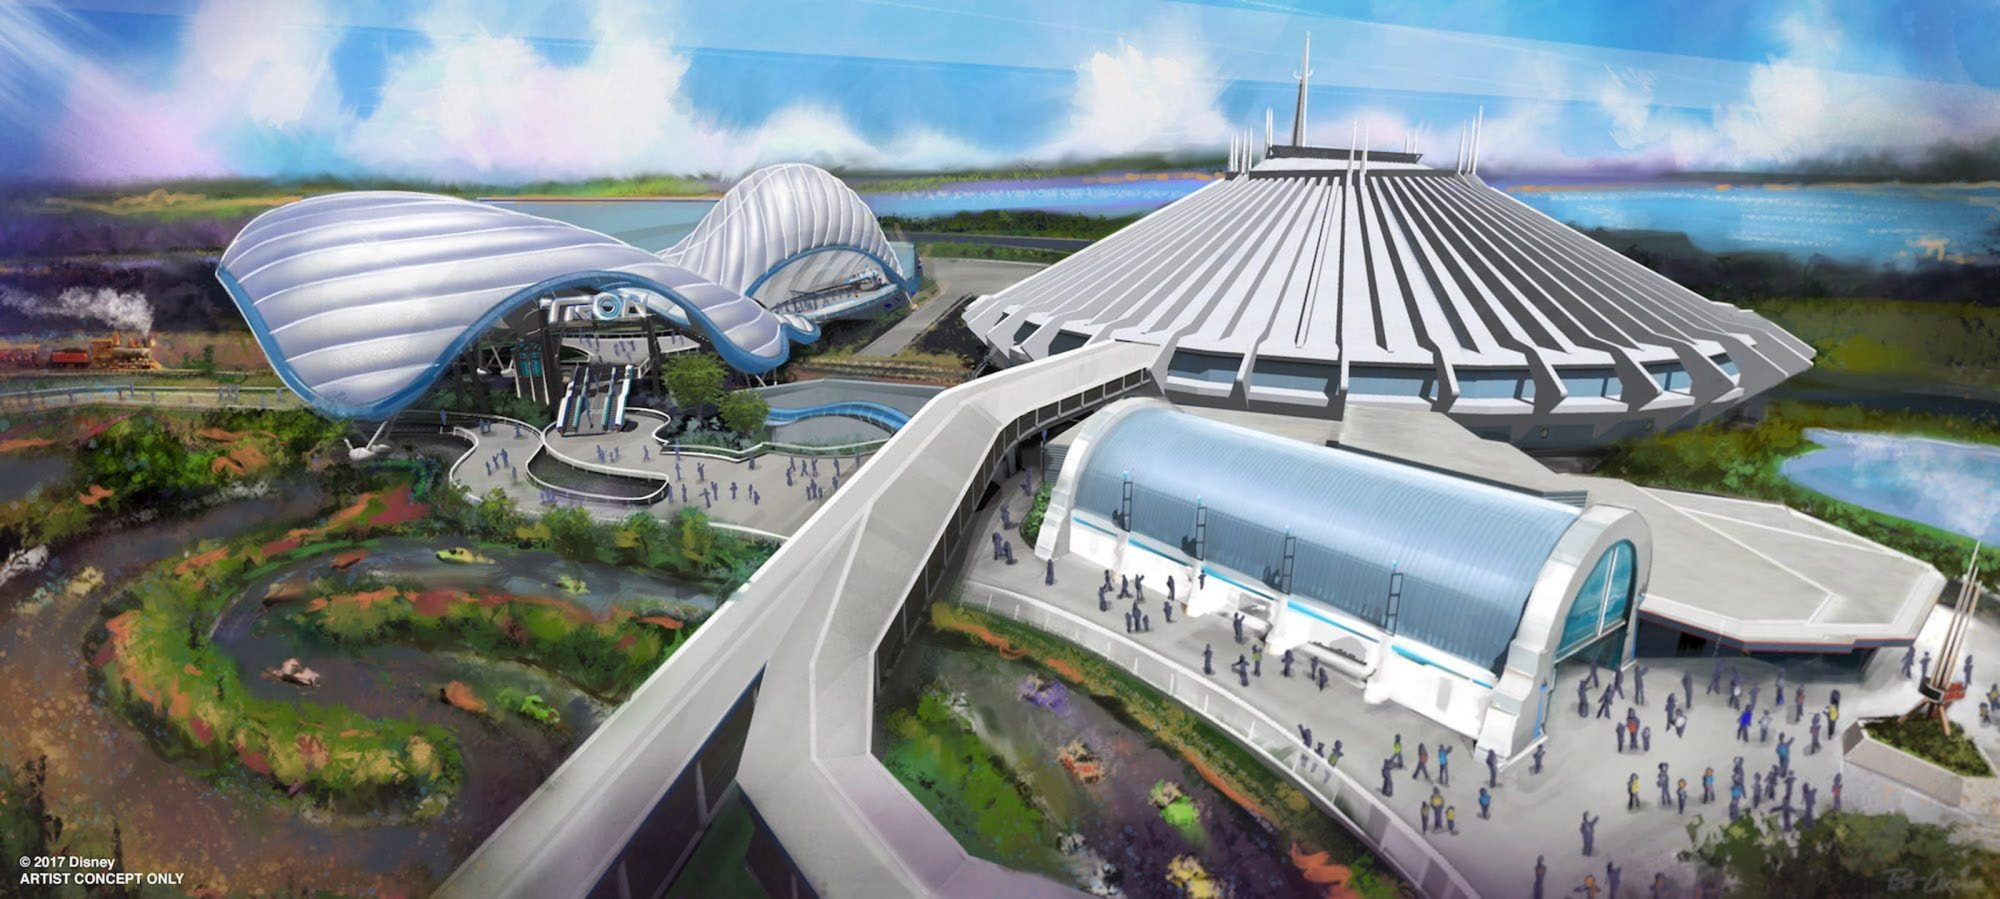 TRON ride concept art at Walt Disney World CR: Disney